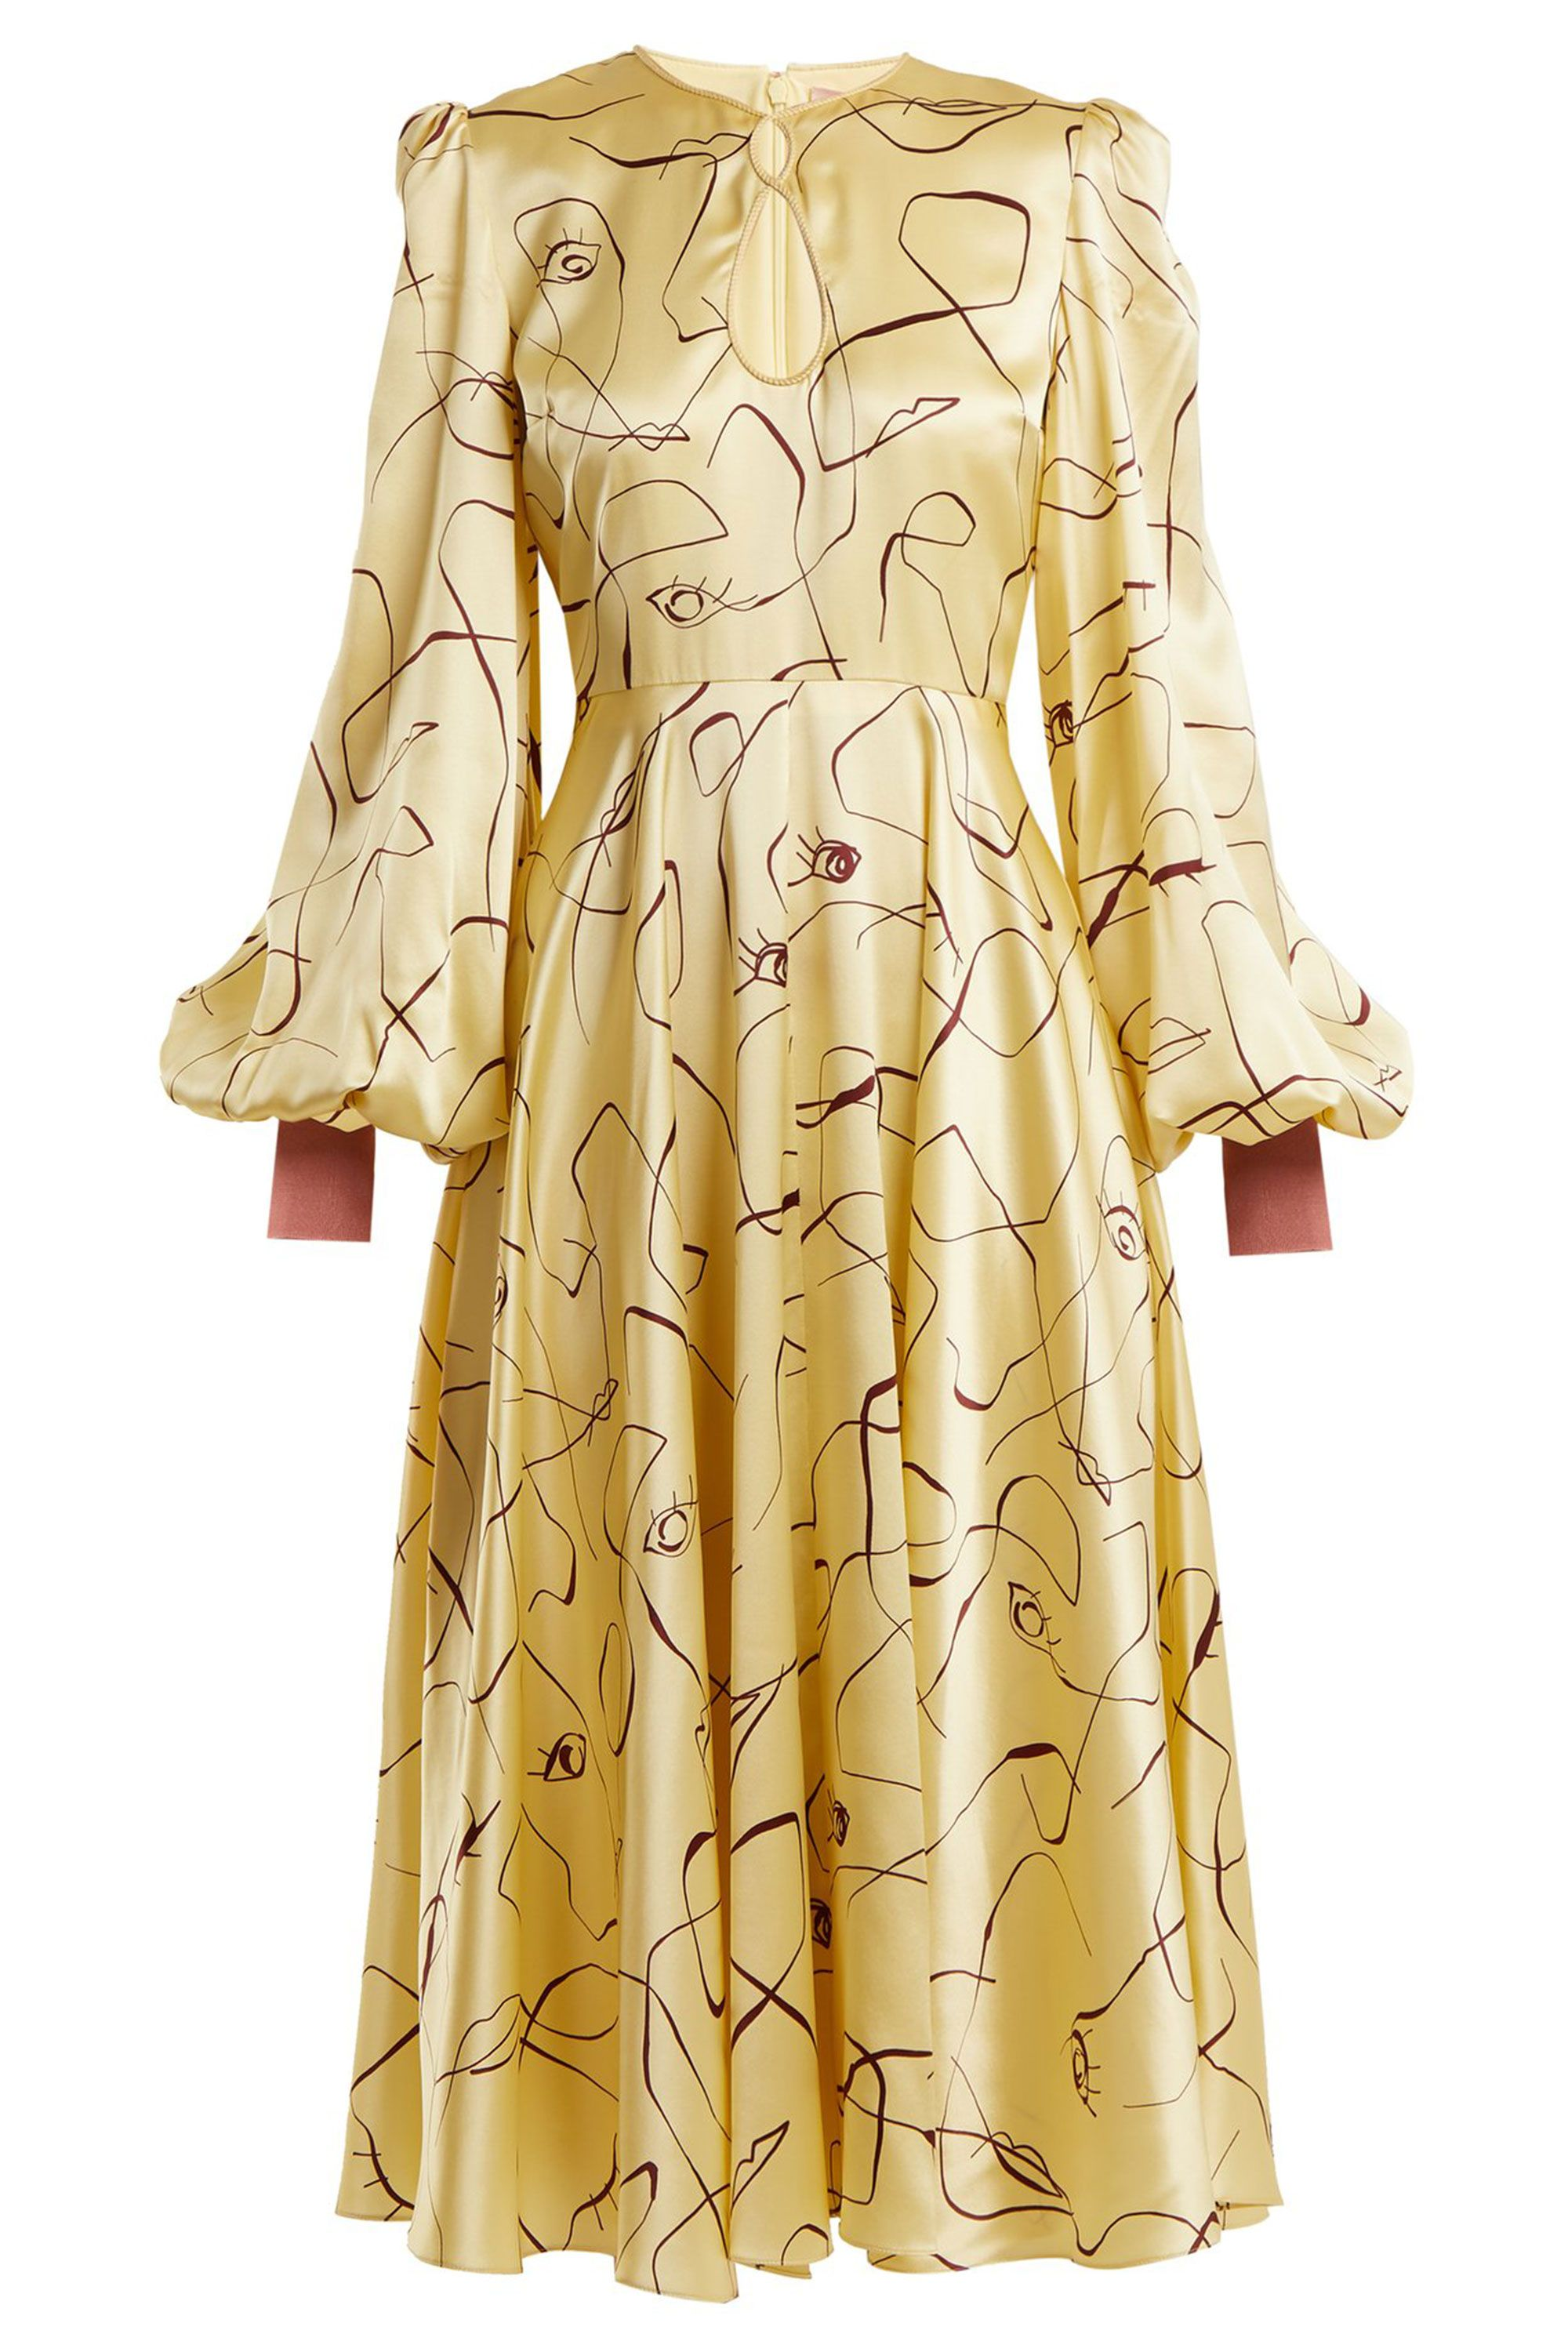 15 Autumn Wedding Guest Dresses Dresses To Wear To Autumn Weddings 2018